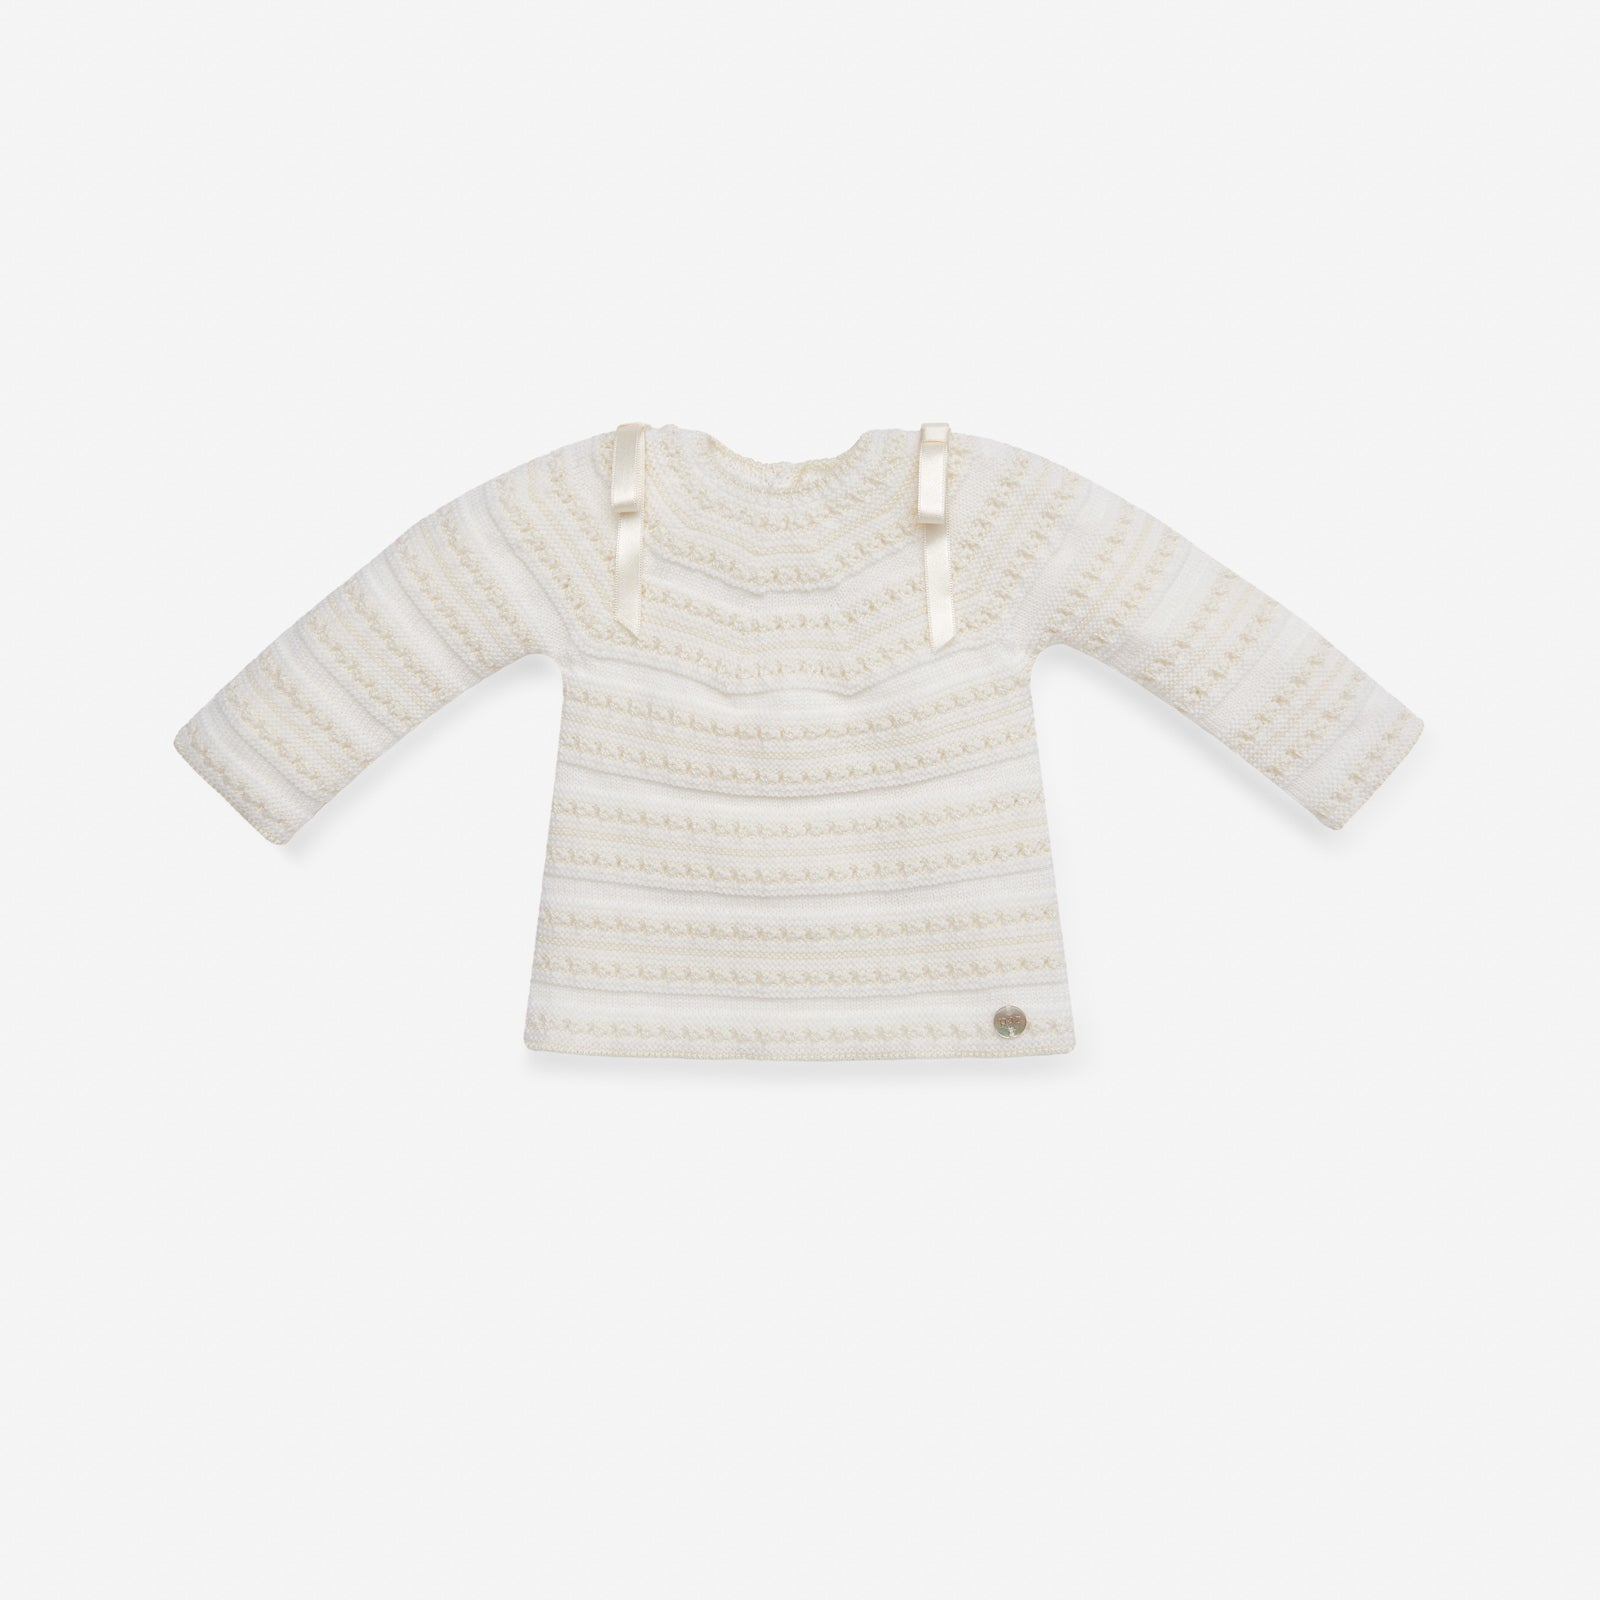 TWO PIECE IVORY KNITTED SET